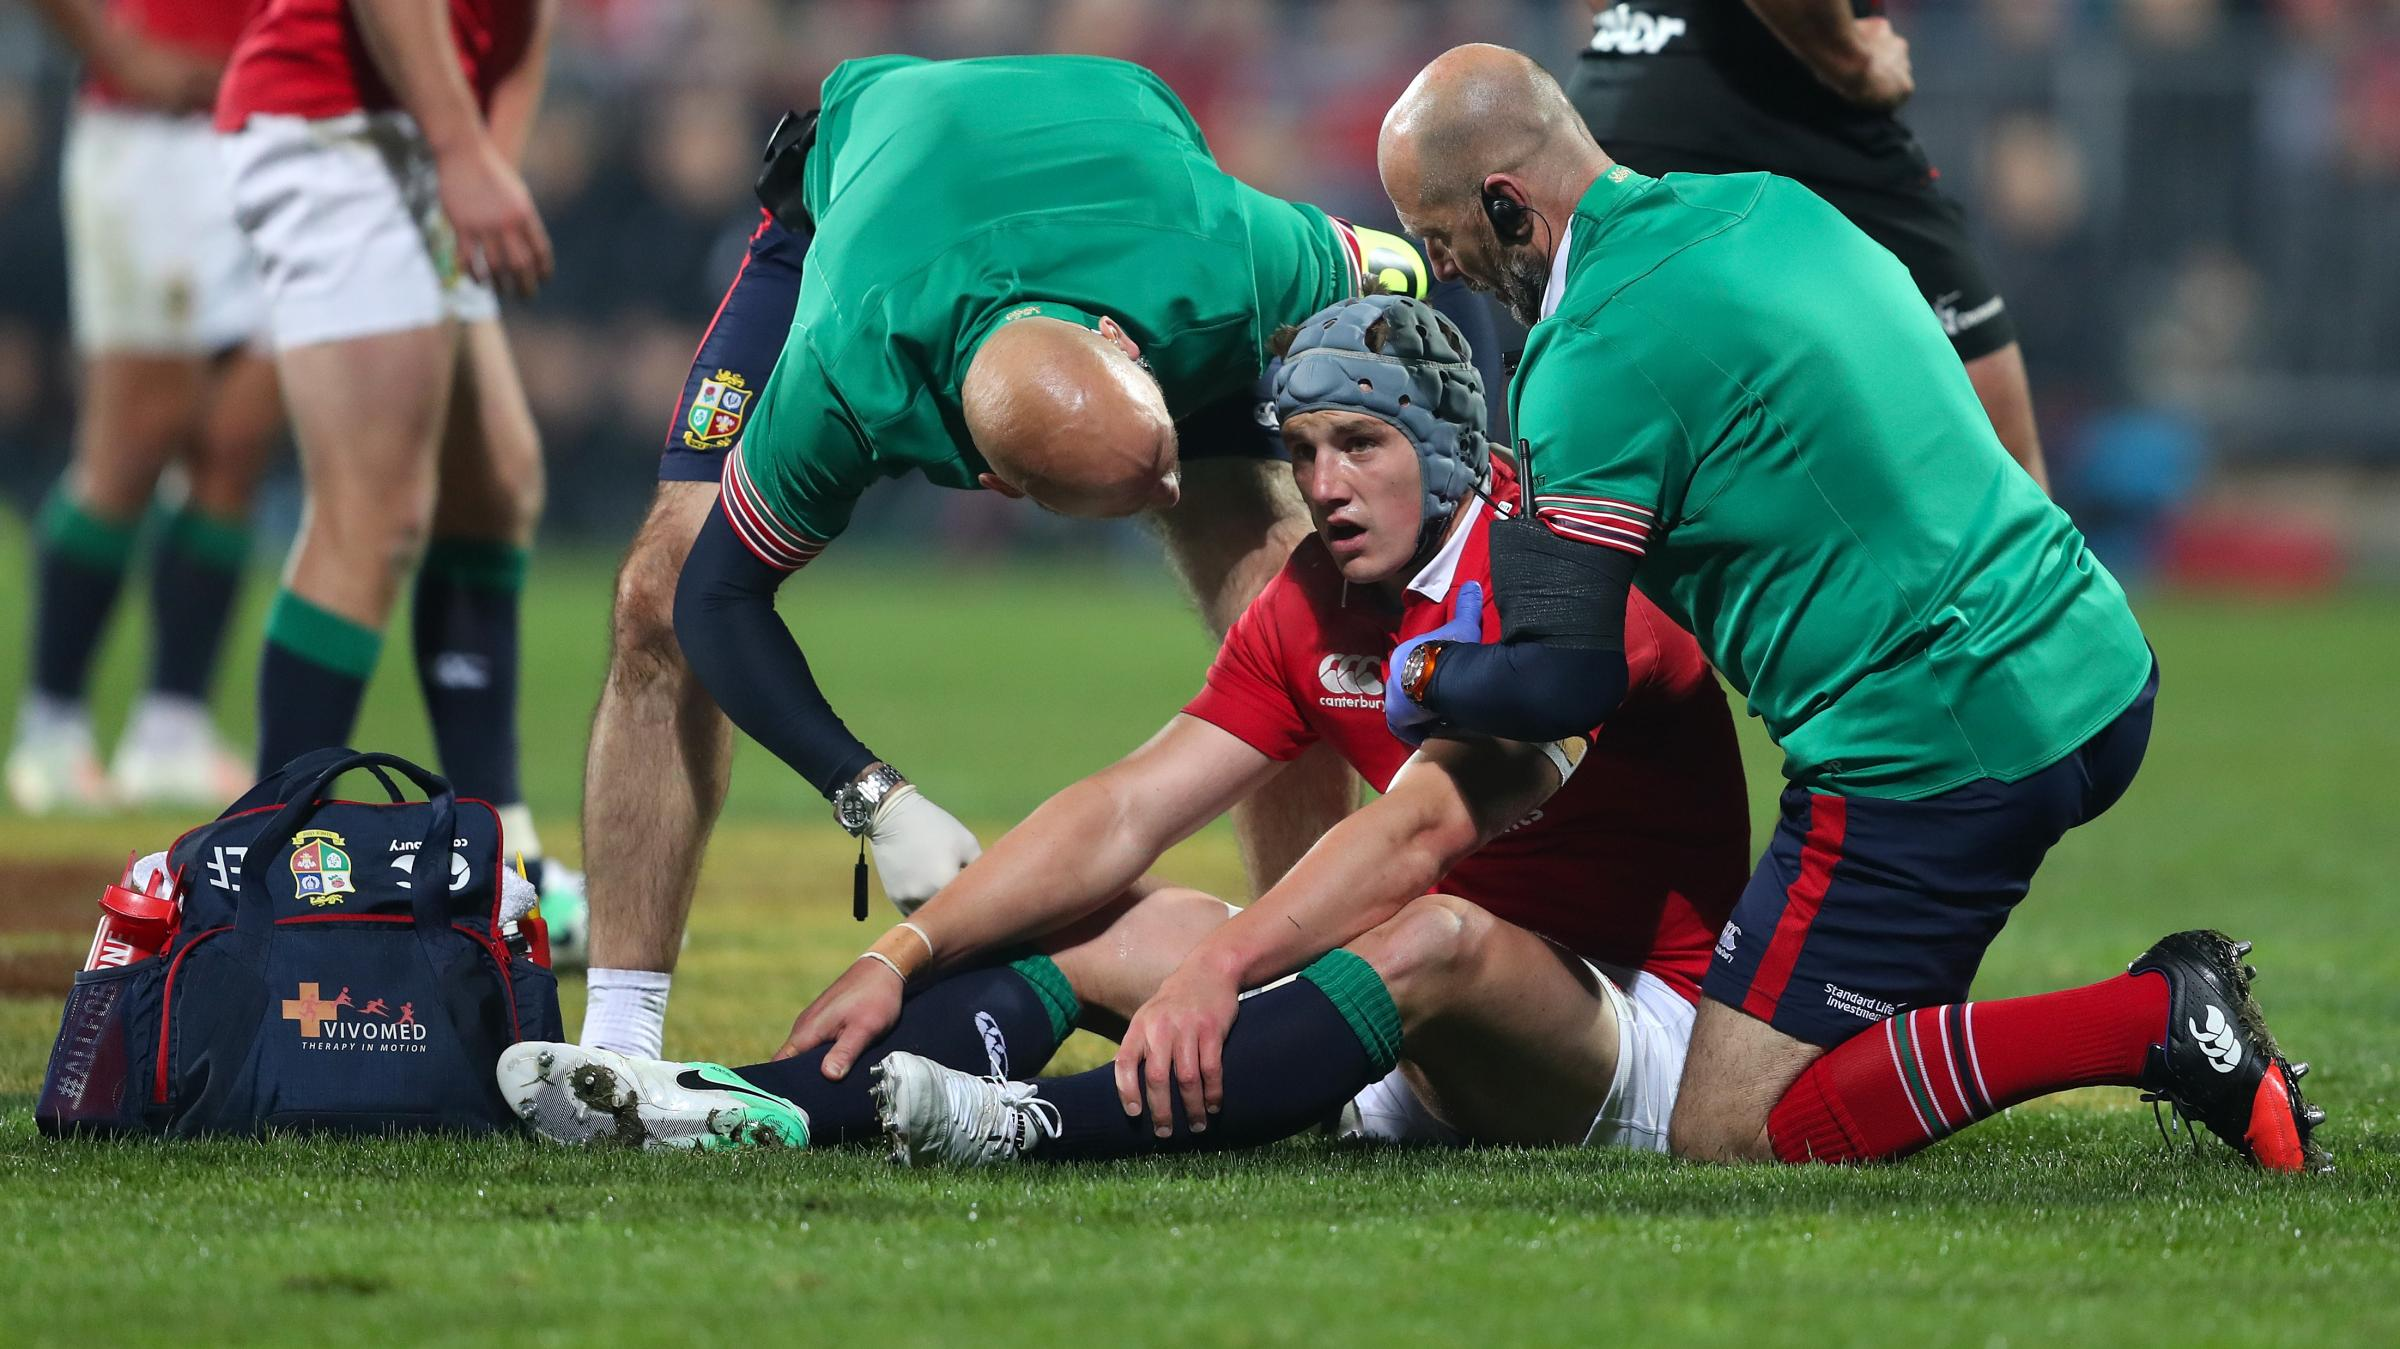 Highlanders 23 - 22 British & Irish Lions: Story of the match